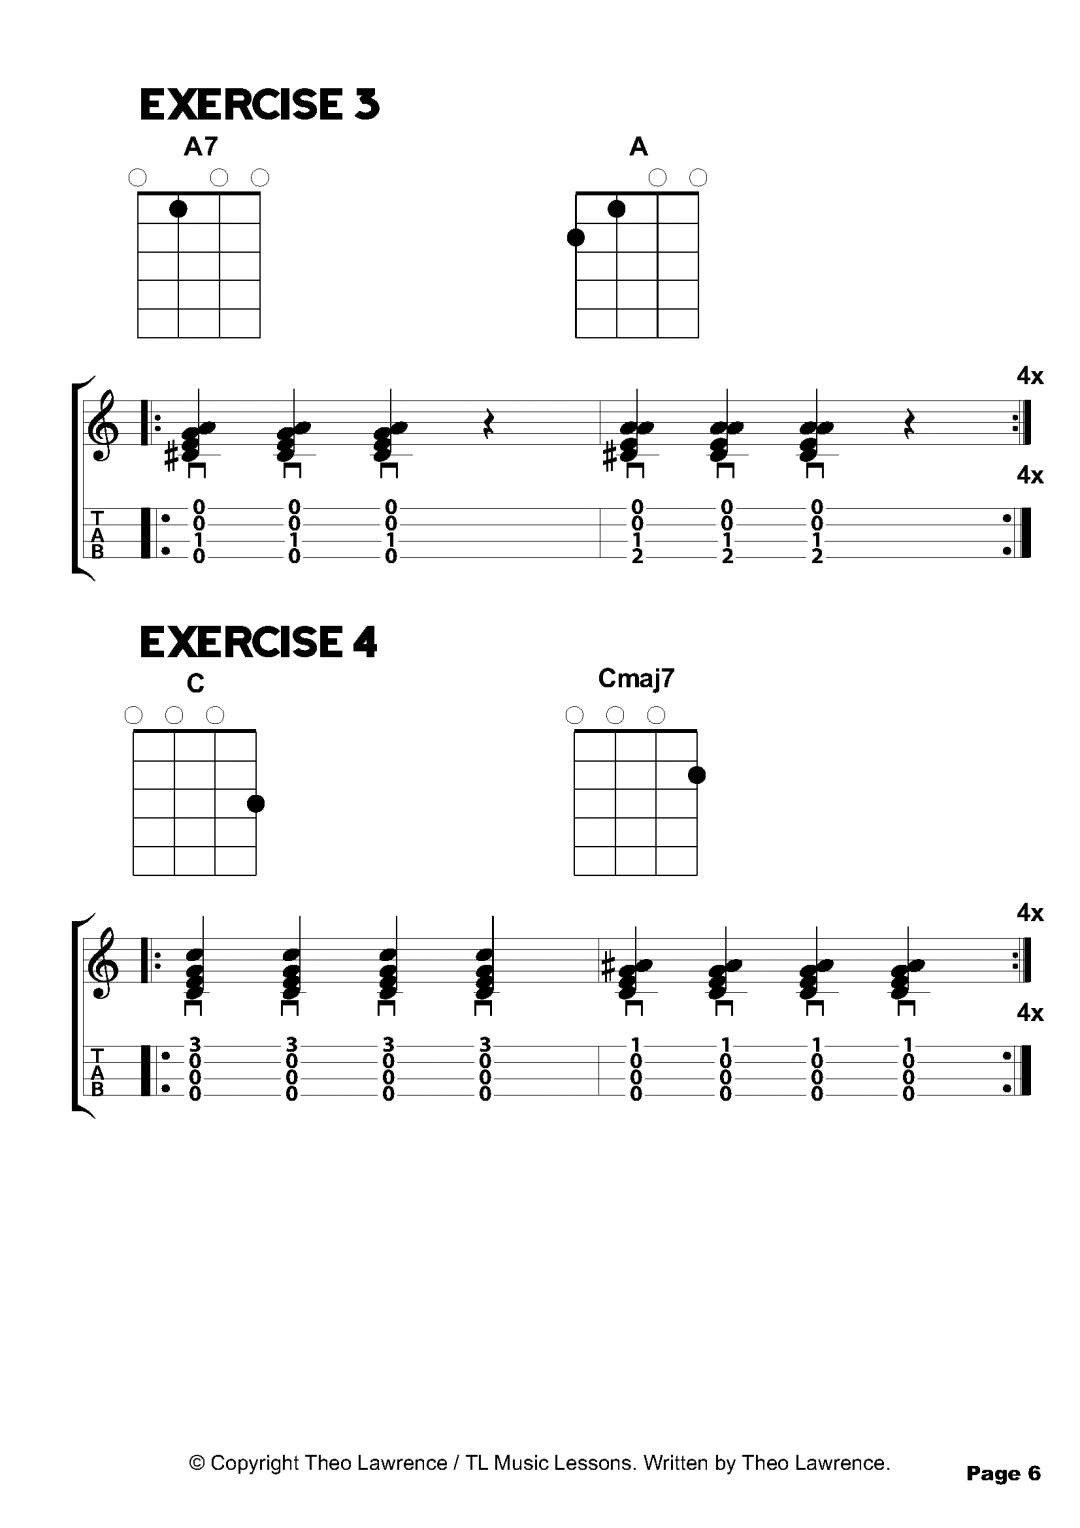 Beginners Ukulele Chord Exercises 3-4 of 50